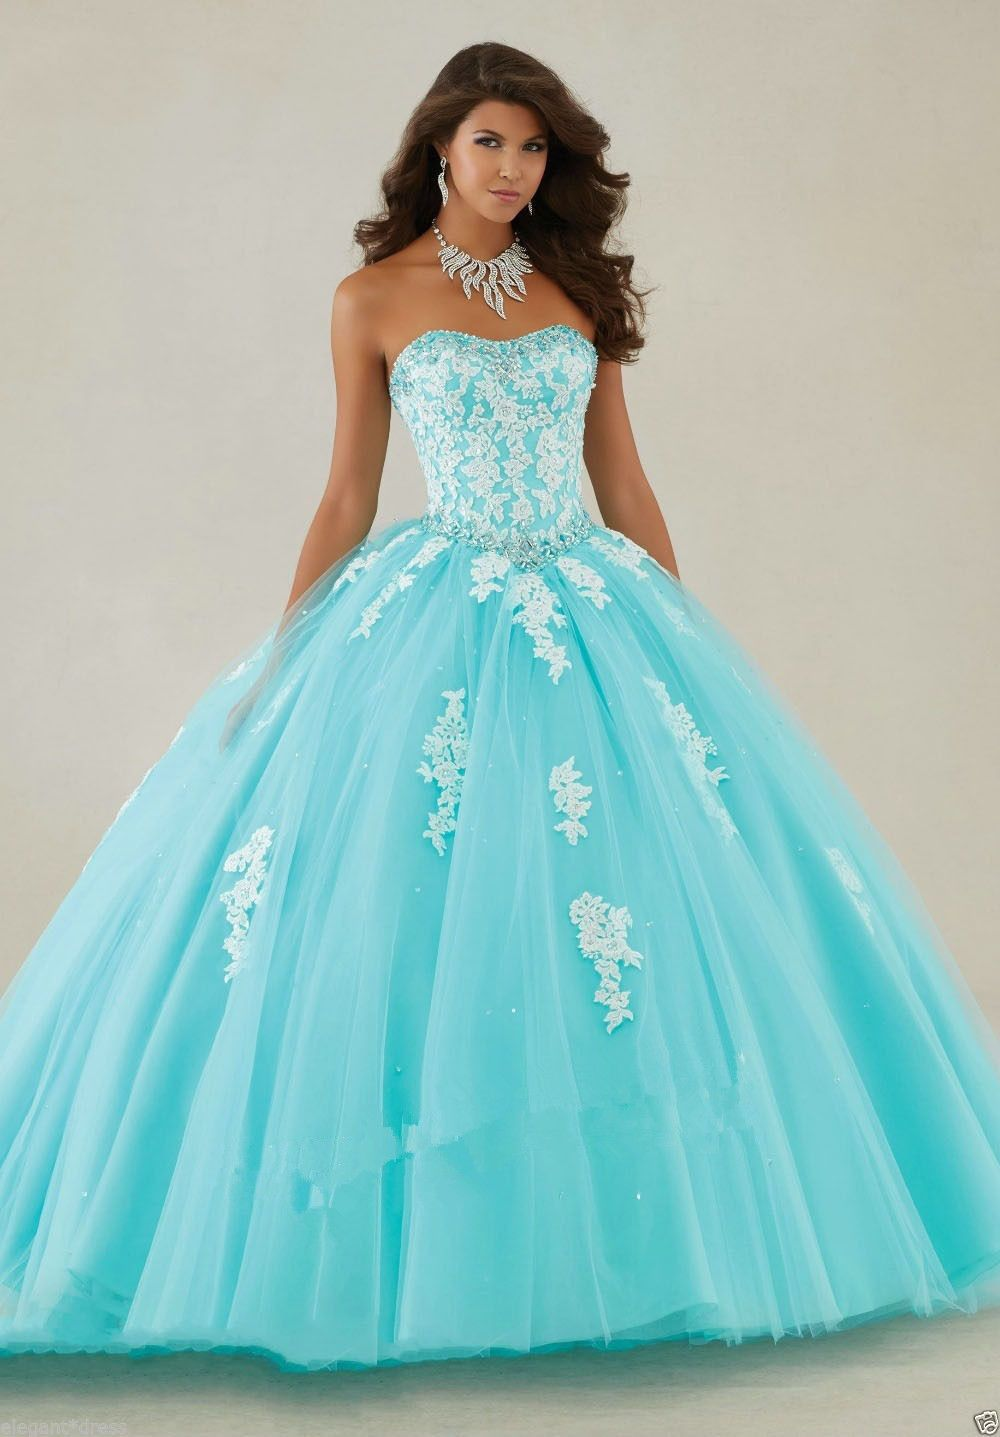 New applique Ball Gown Formal Quinceanera Prom Pageant Party Wedding ...